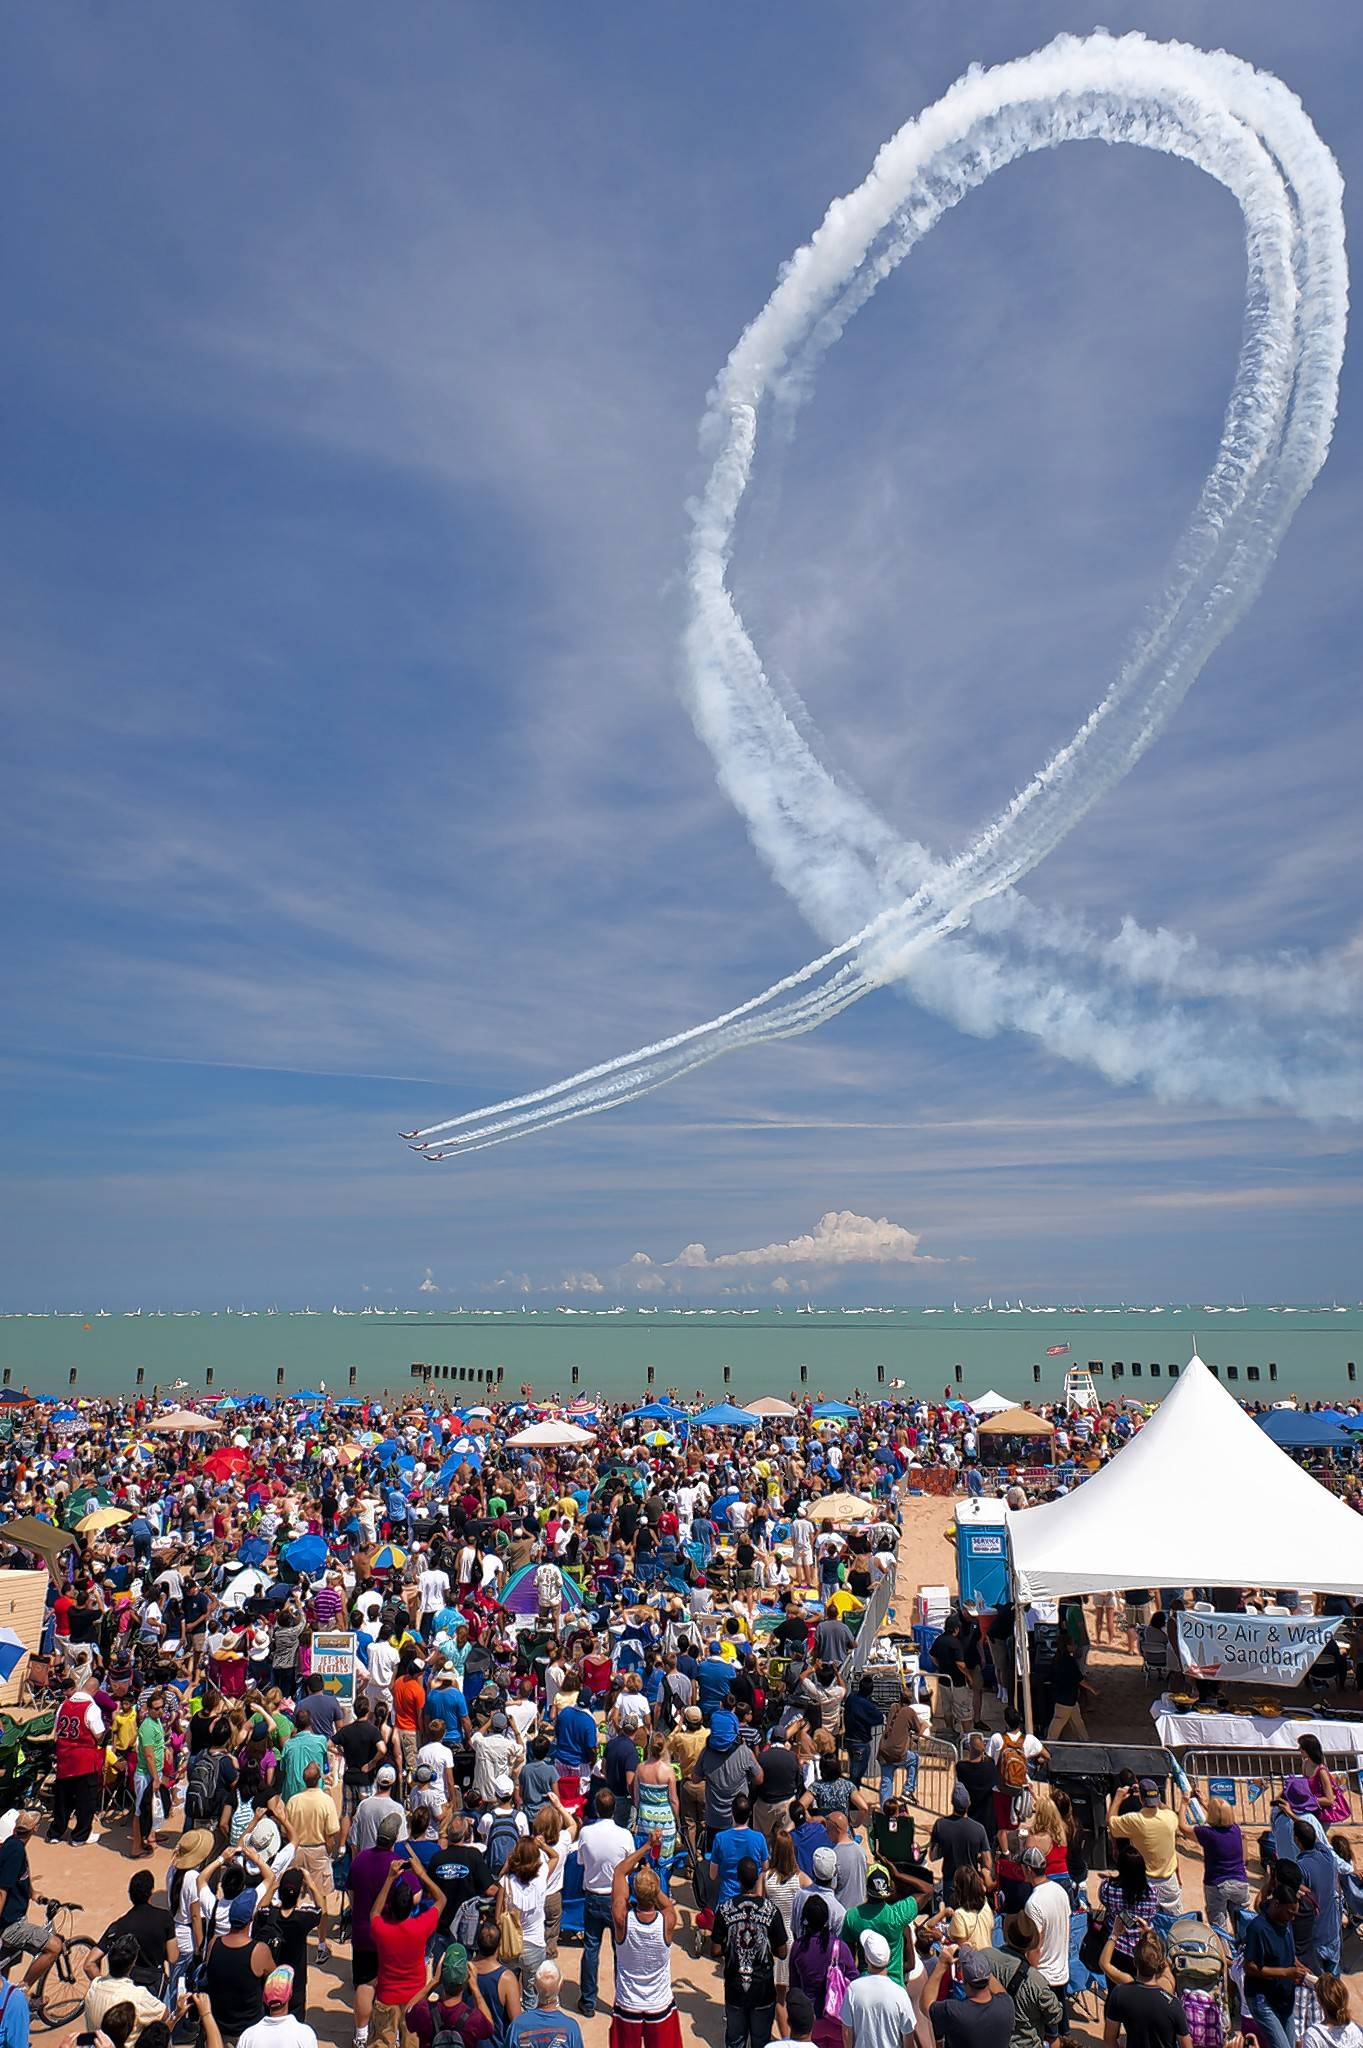 Crowds will gather on the beachfront for the 59th Annual Chicago Air and Water Show.